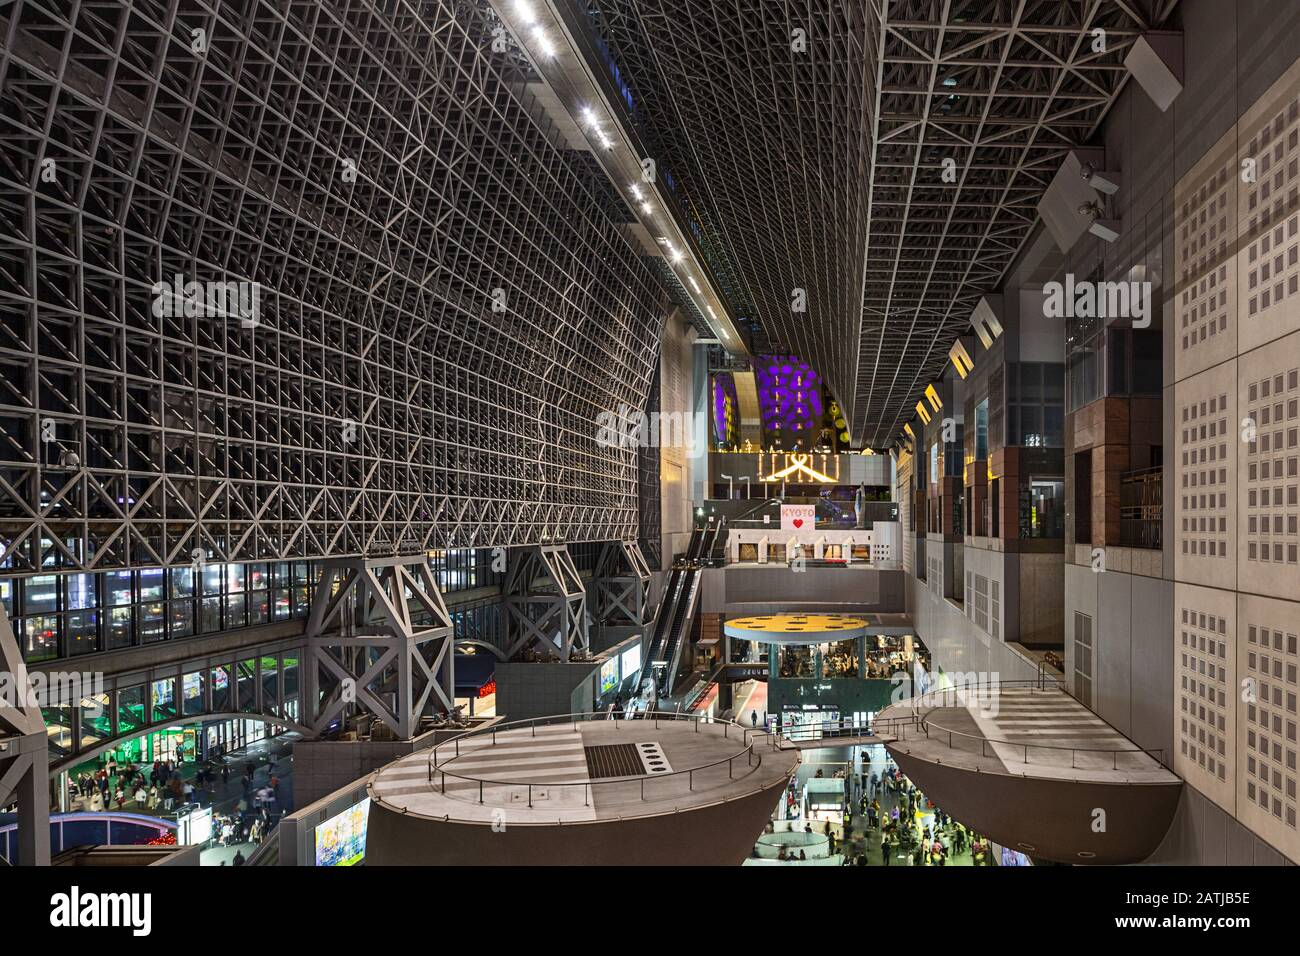 Kyoto Station in Japan. Stock Photo